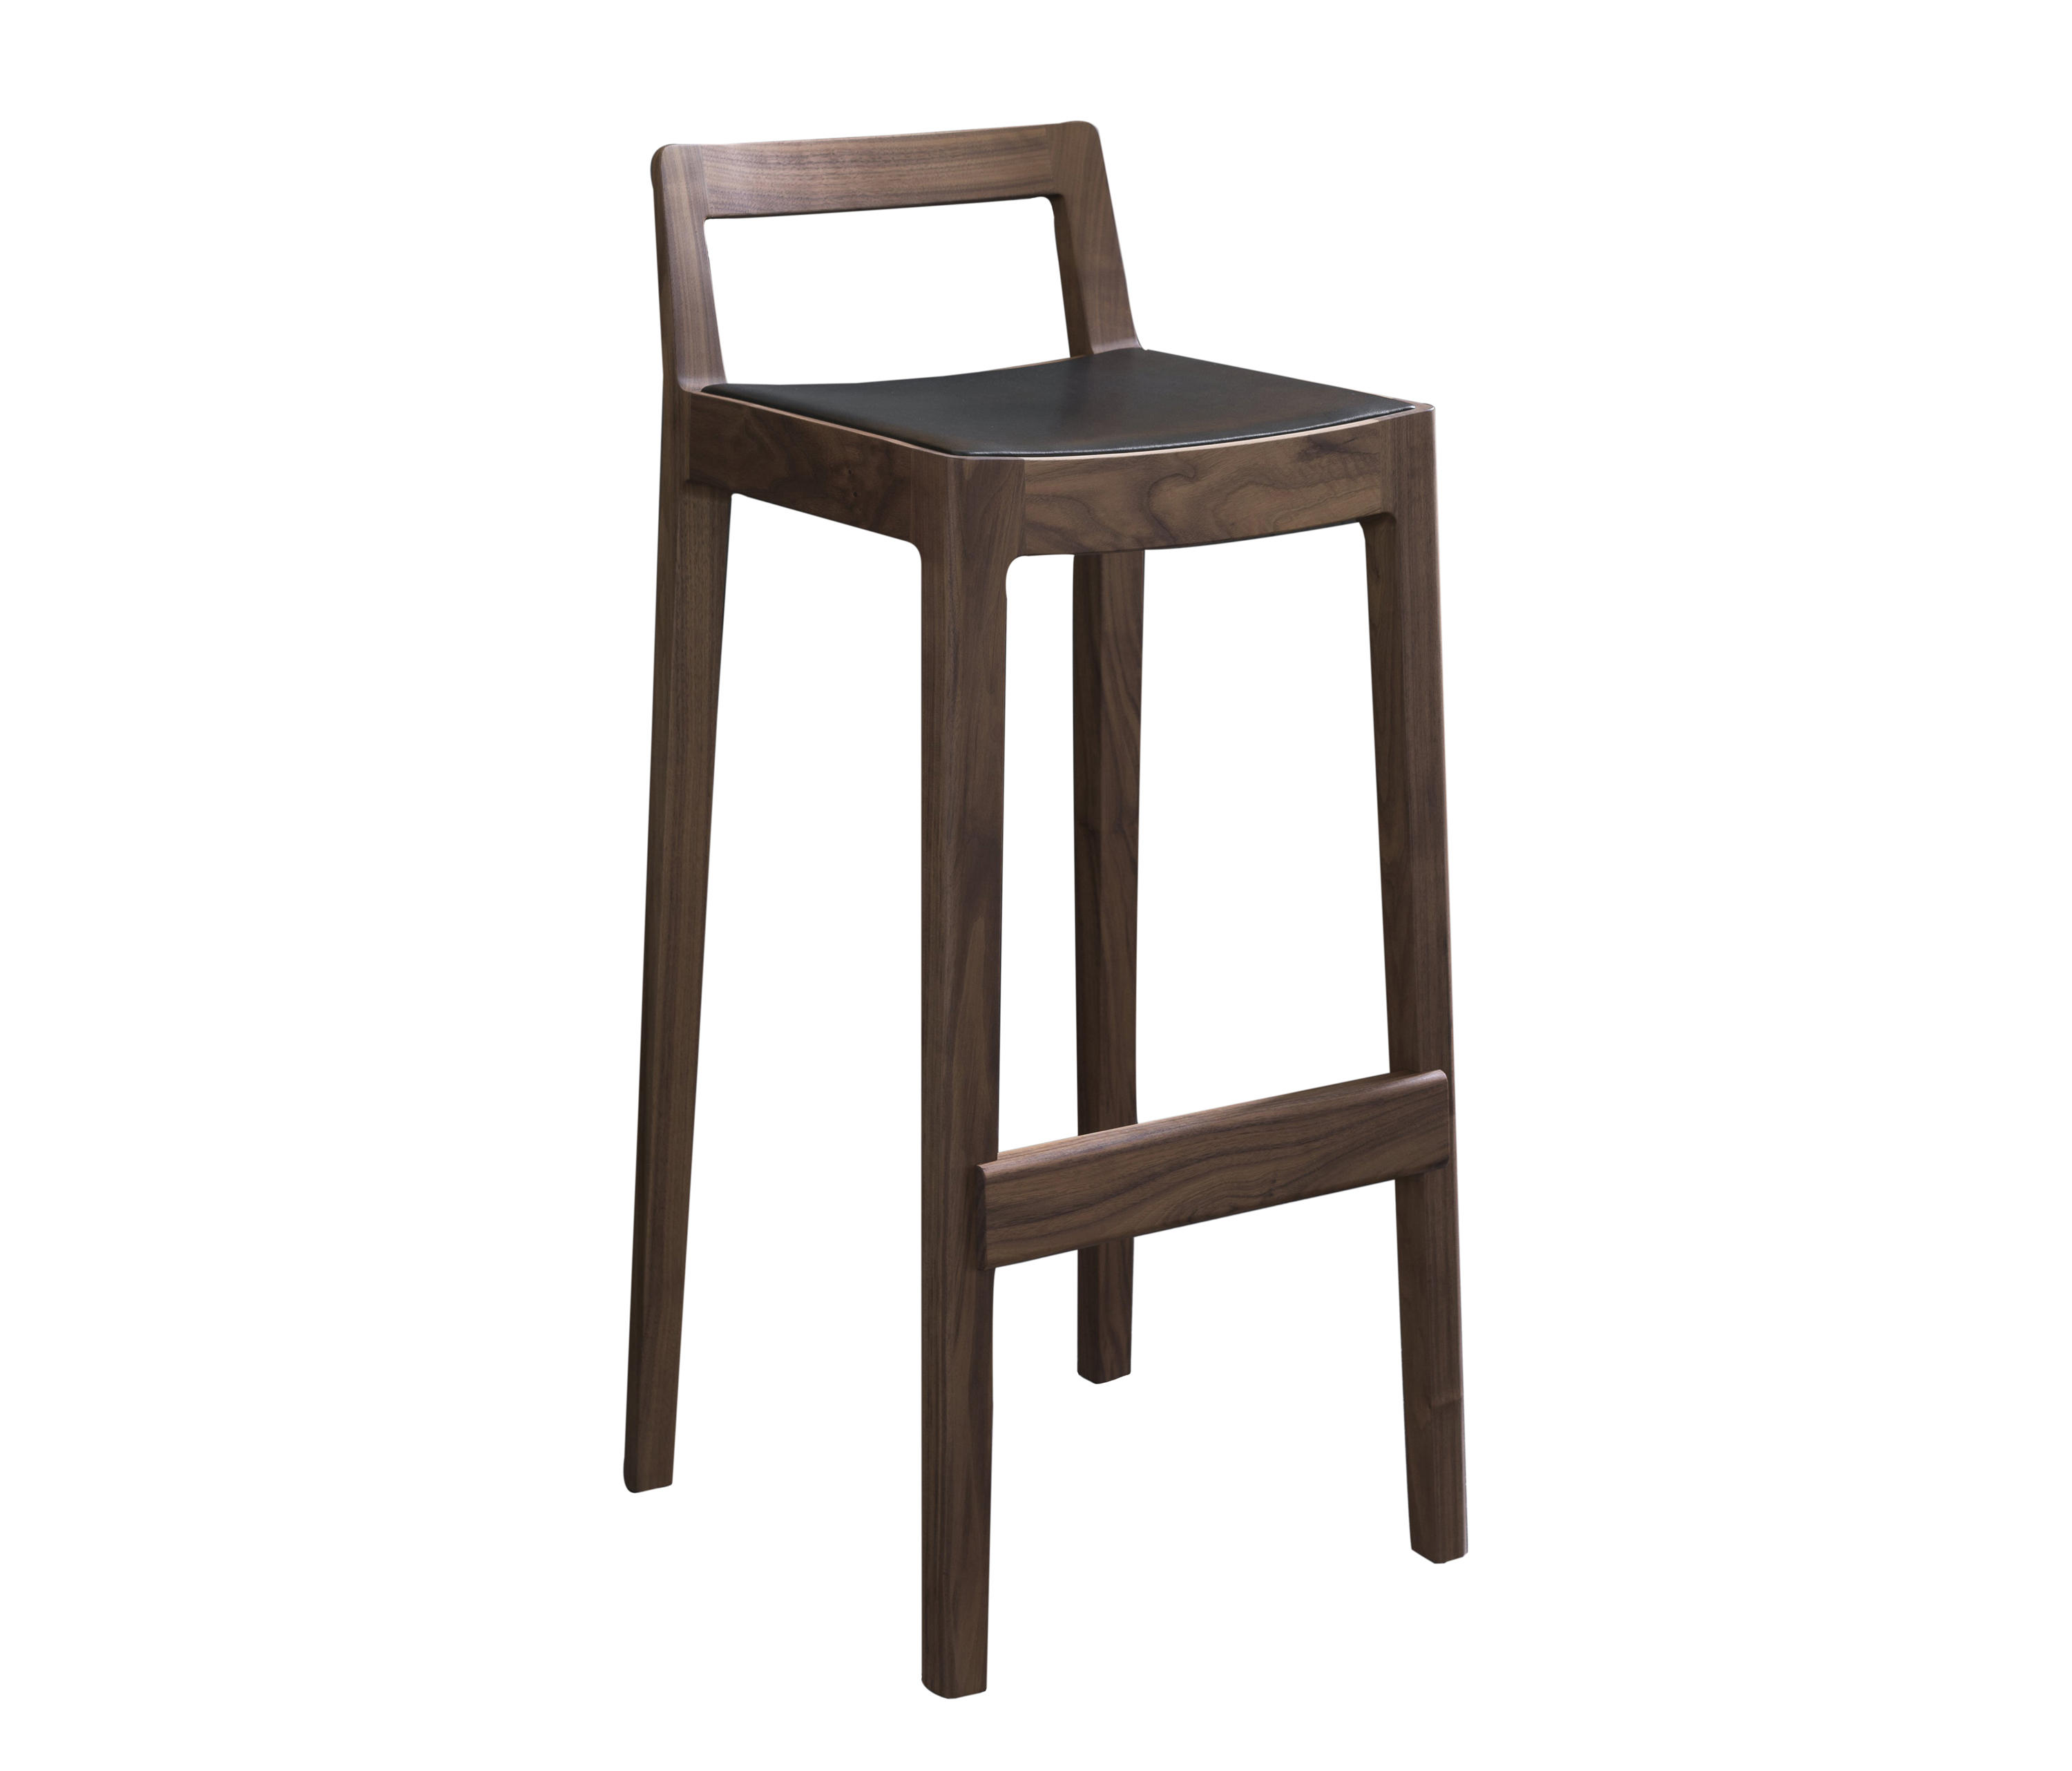 R R COUNTER CHAIR Bar stools from Miyazaki